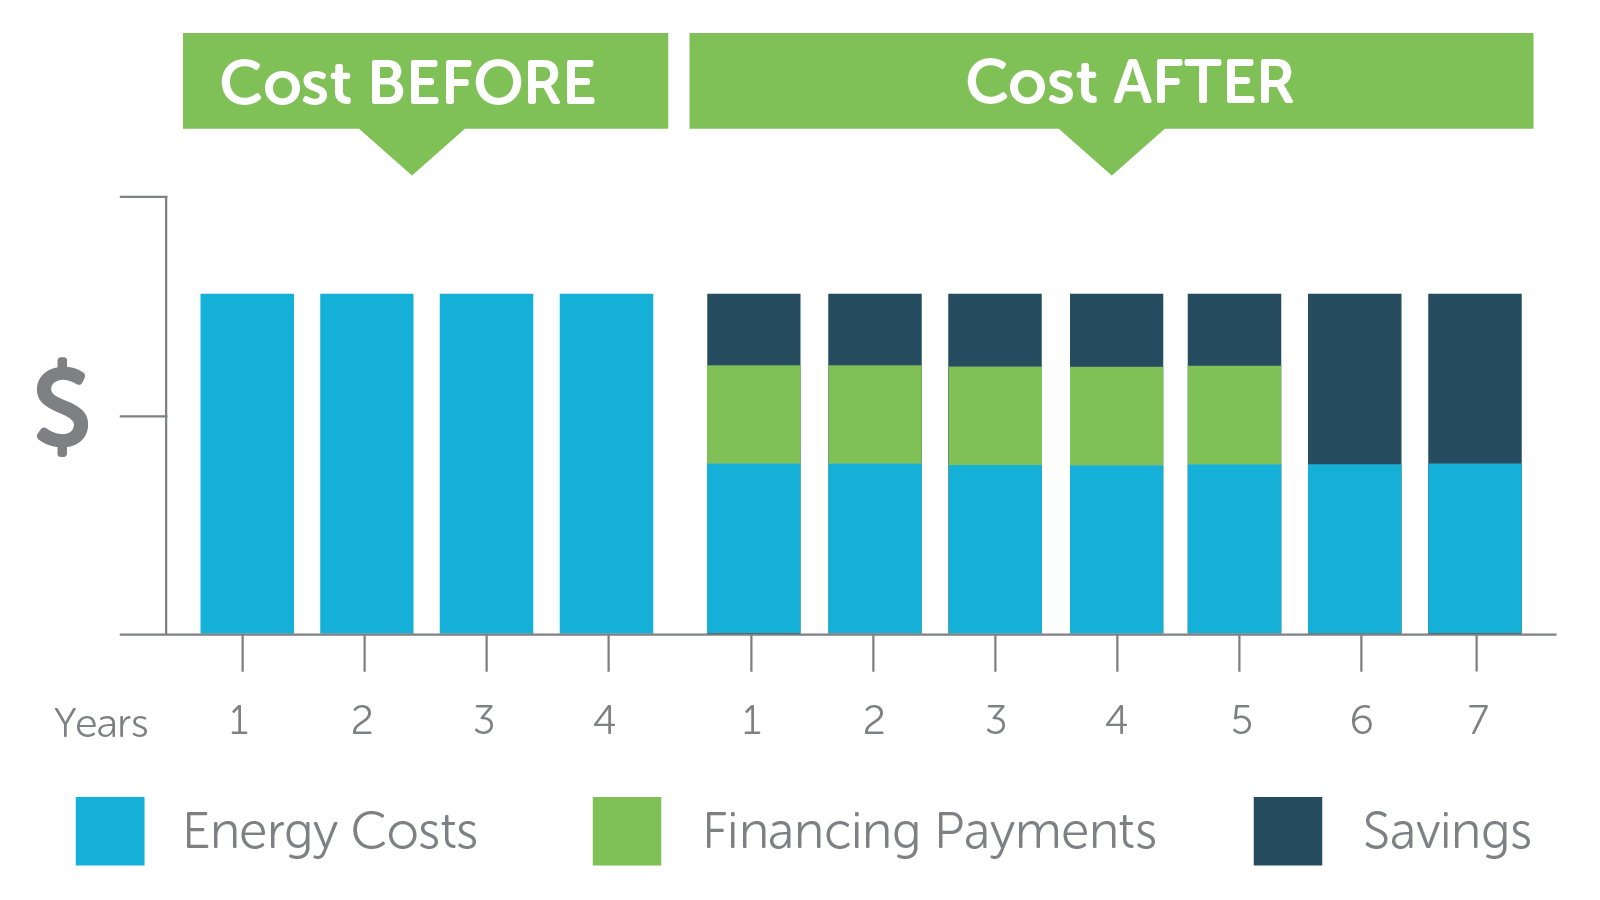 A chart showing an example of savings over time where cost savings start at year one and increase after financing payments are finished.